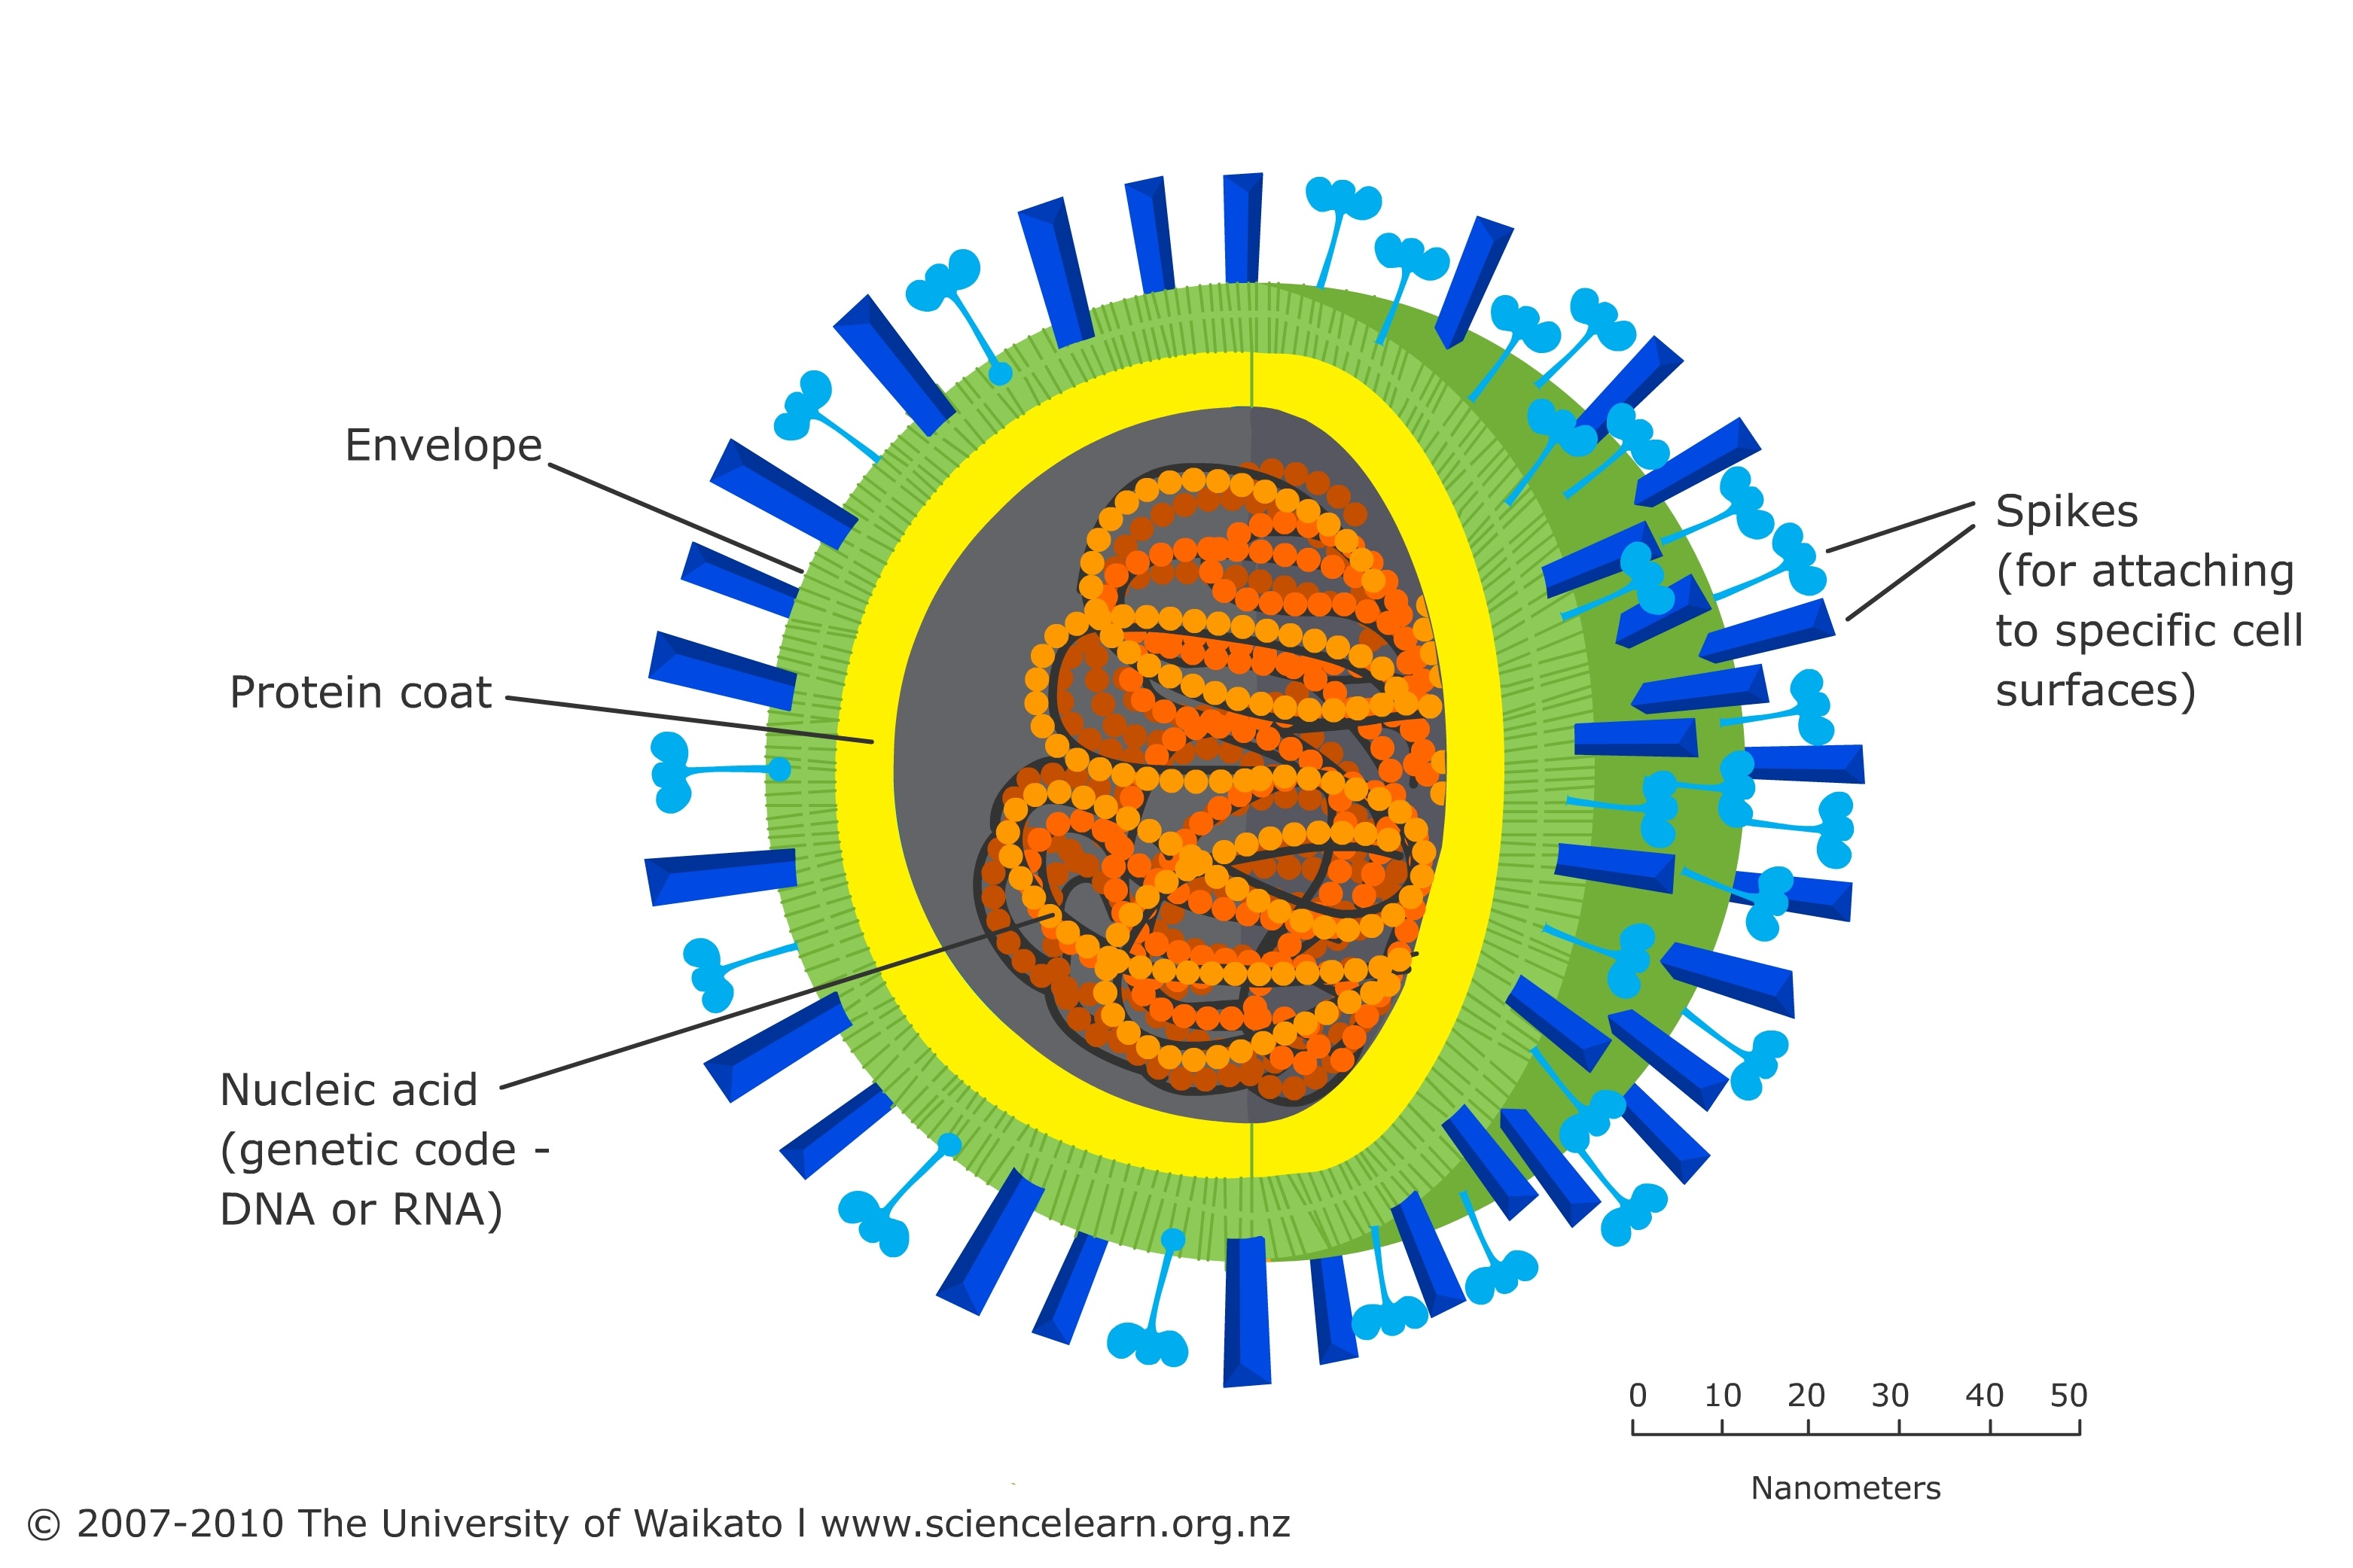 basic virus diagram ford f150 wiring for radio immunity a understanding biology igcse 2 60 61